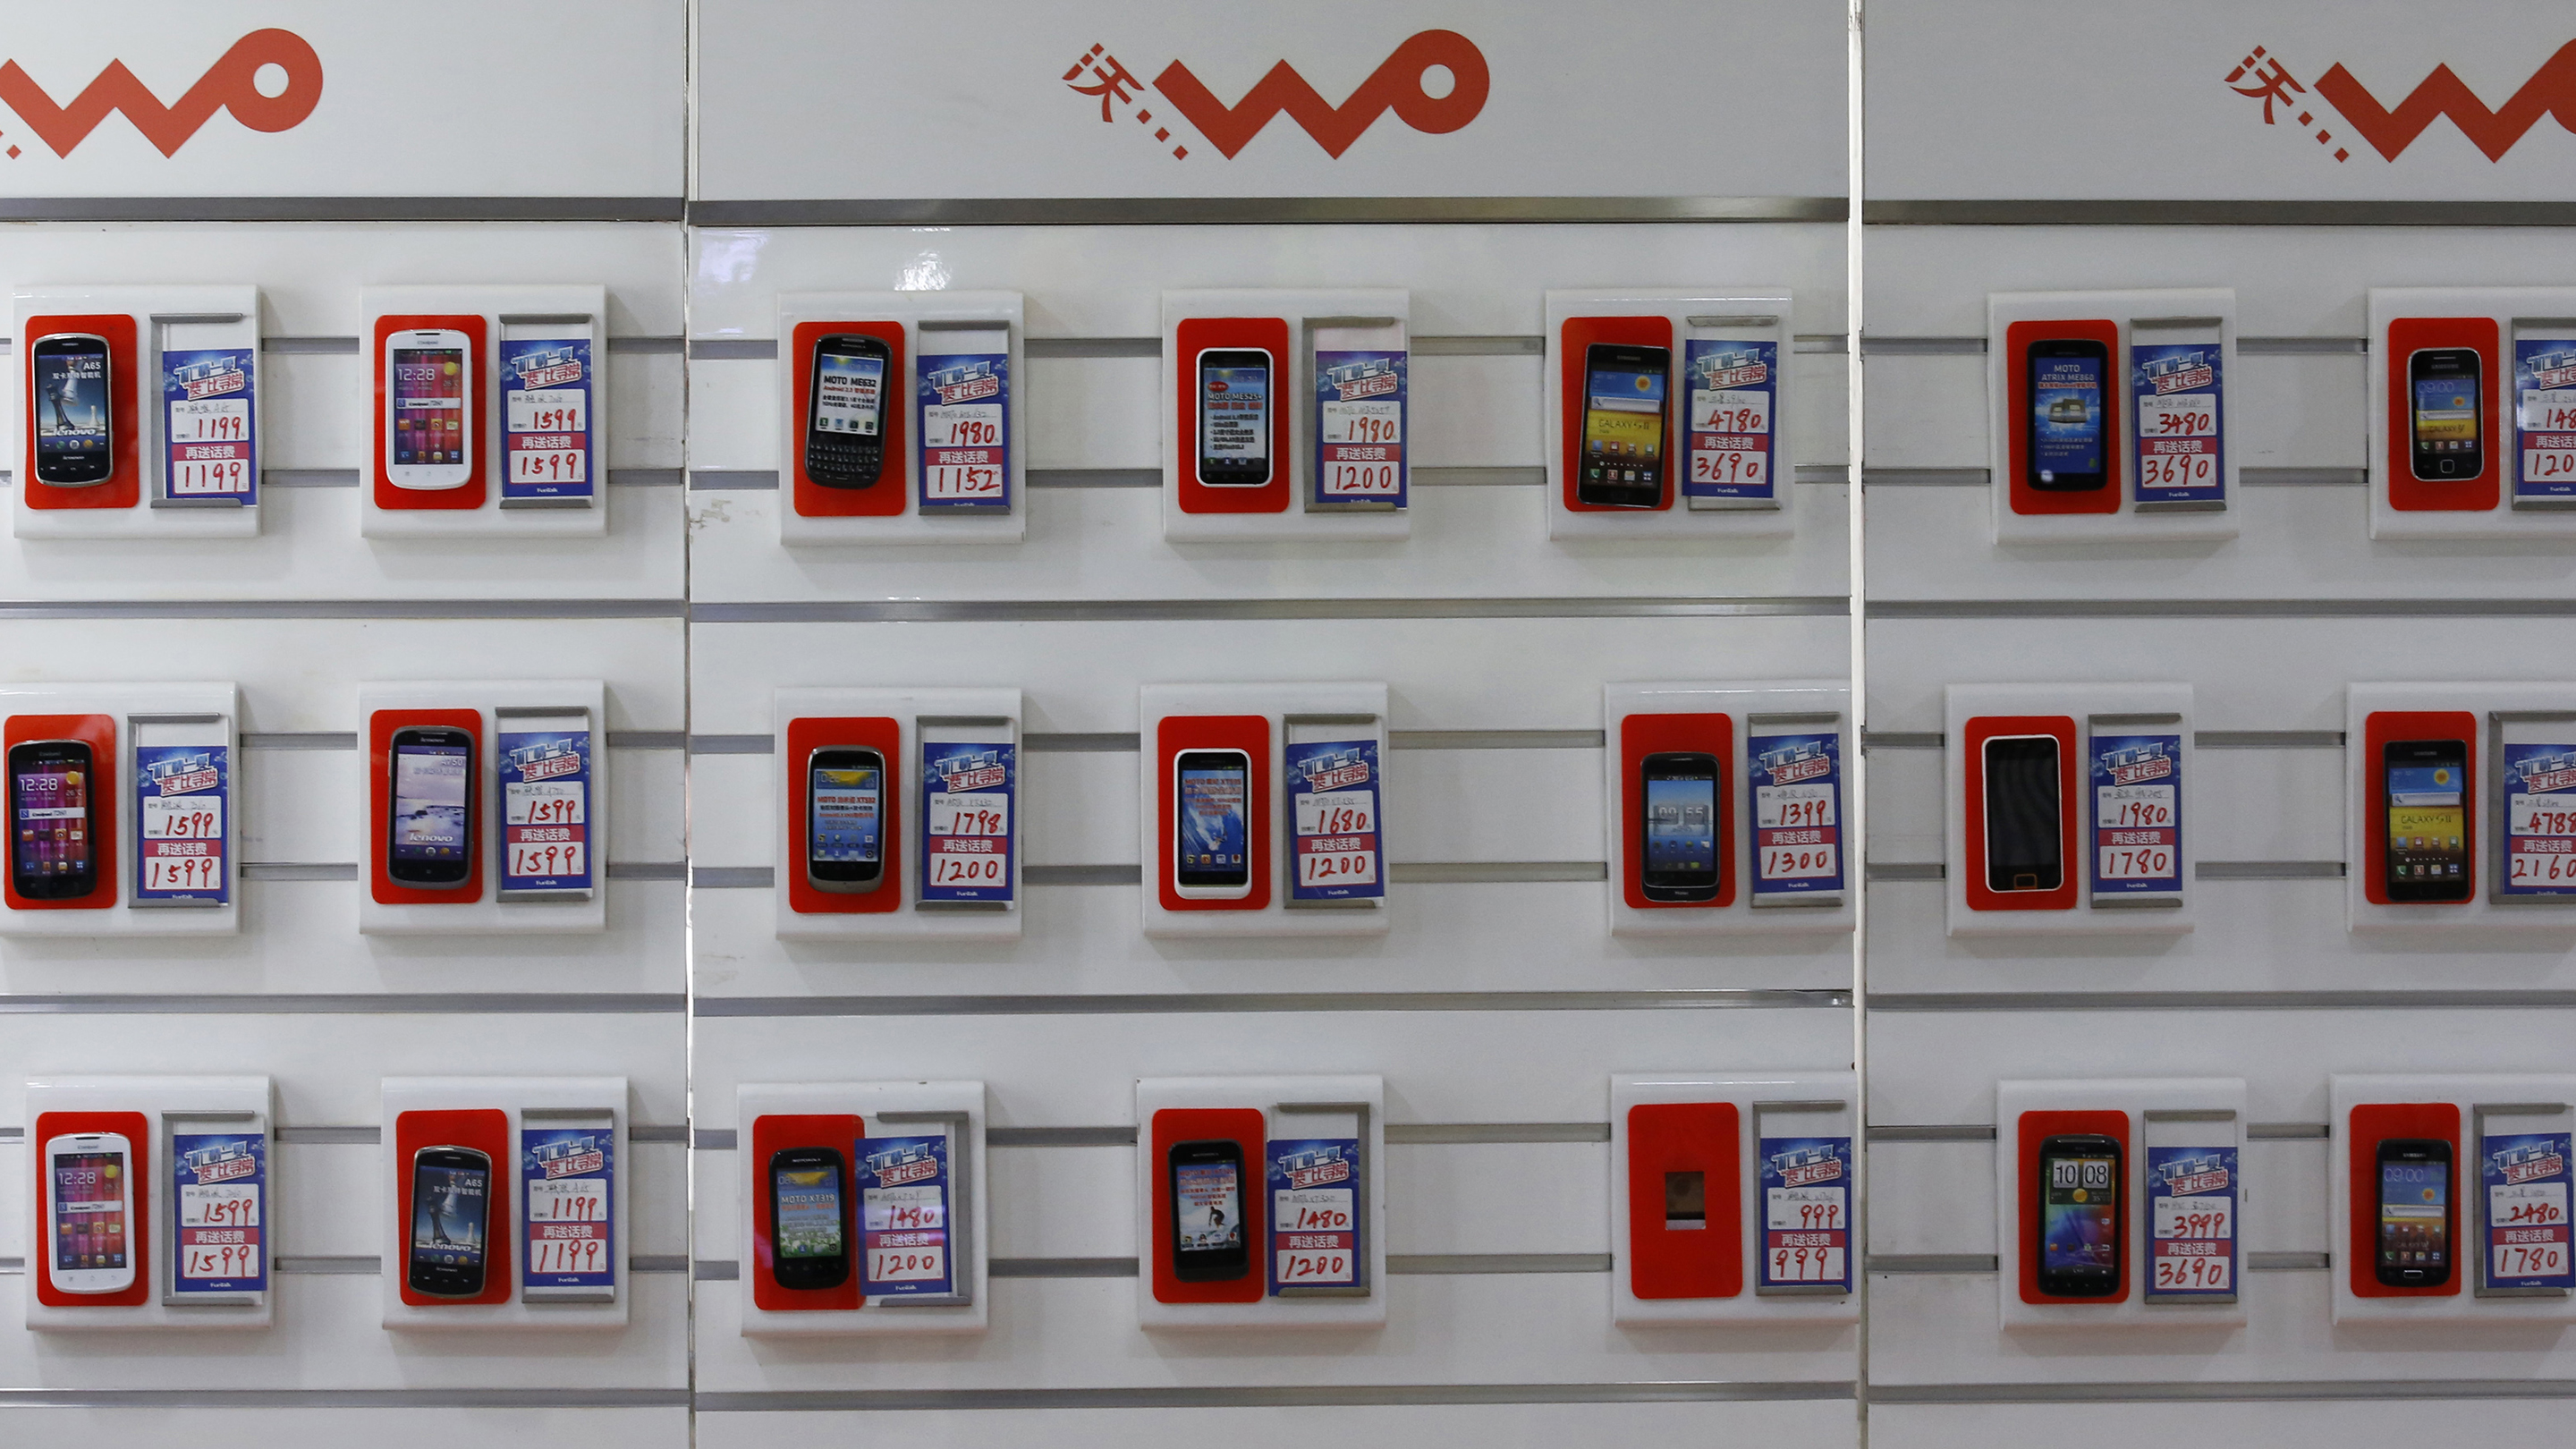 Smartphones are displayed at a China Unicom retail shop in Beijing